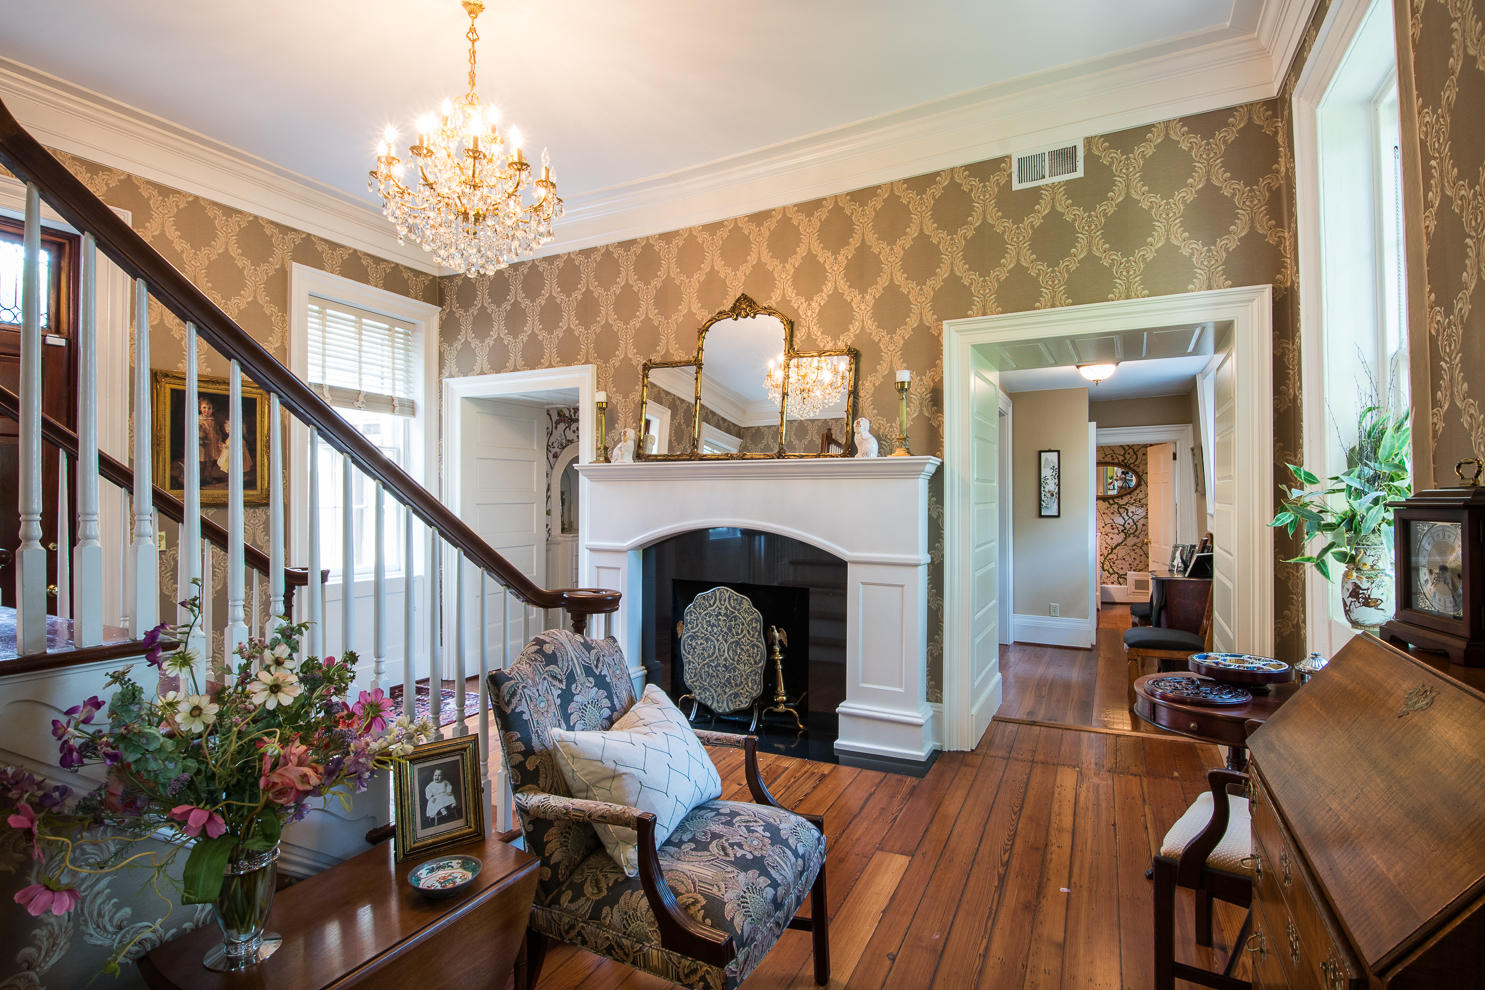 South of Broad Homes For Sale - 1 Prices, Charleston, SC - 7